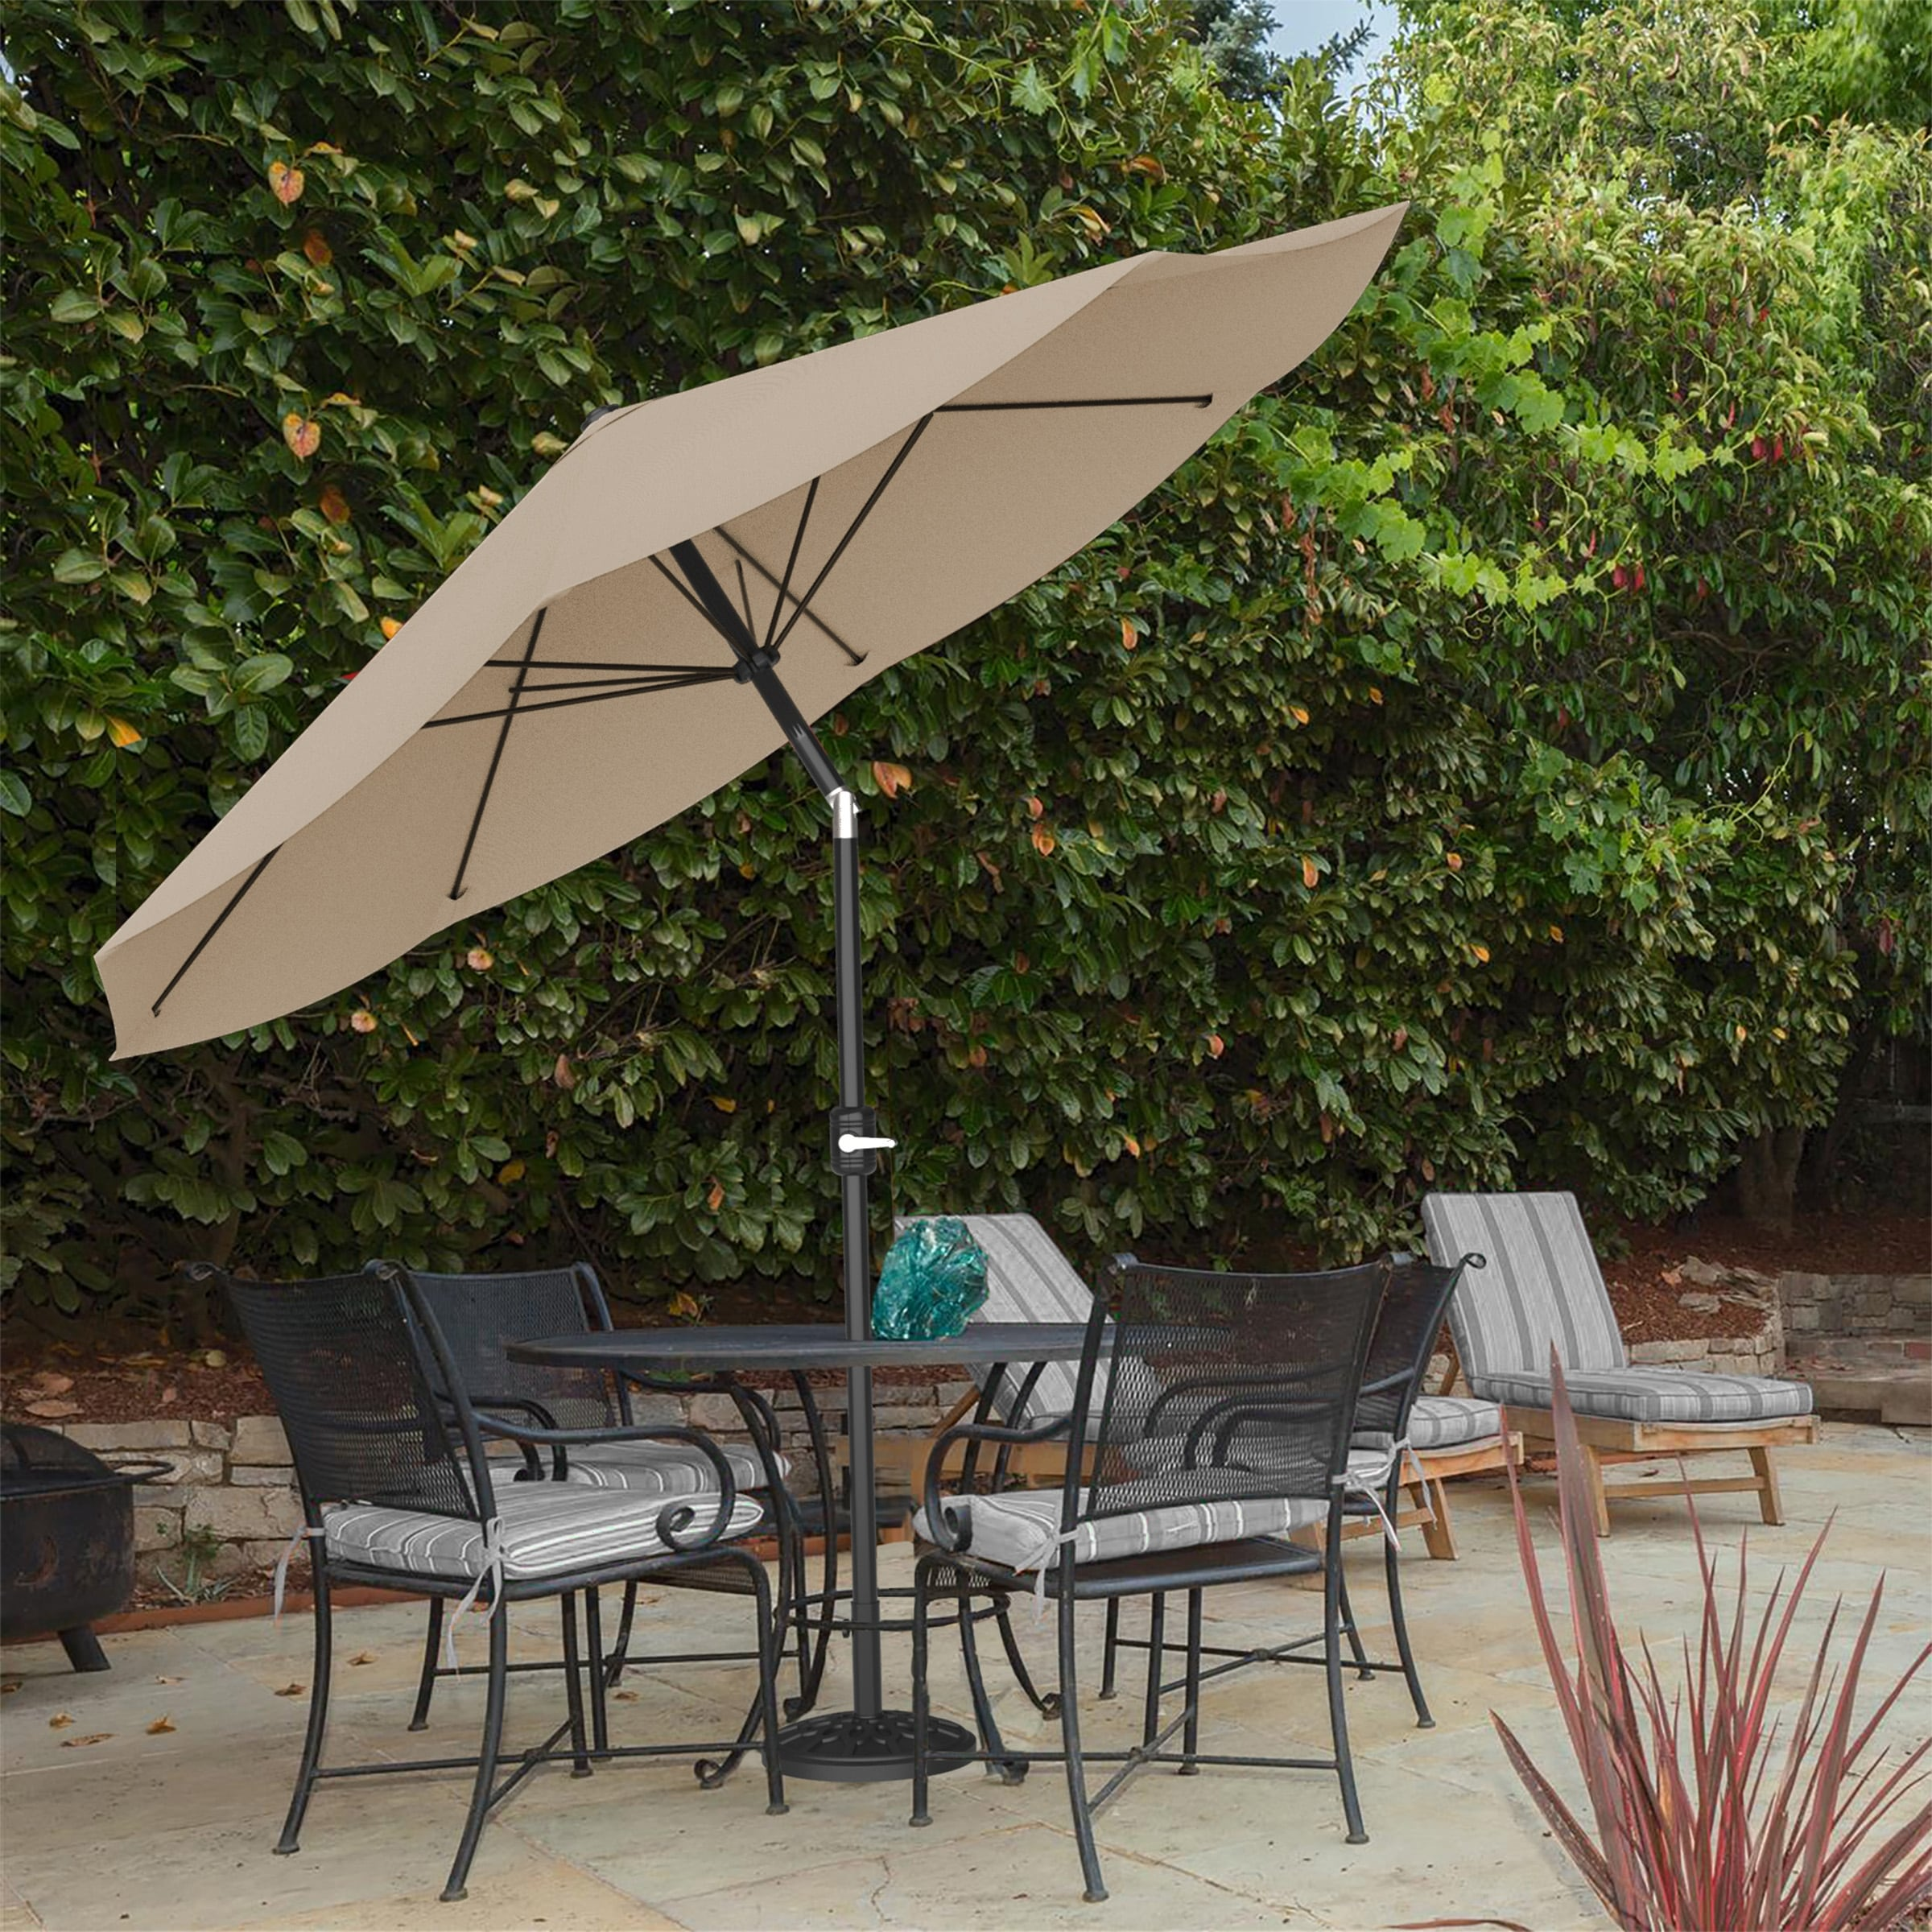 9ft Patio Umbrella with Auto Tilt by Pure Garden, Base Not Included